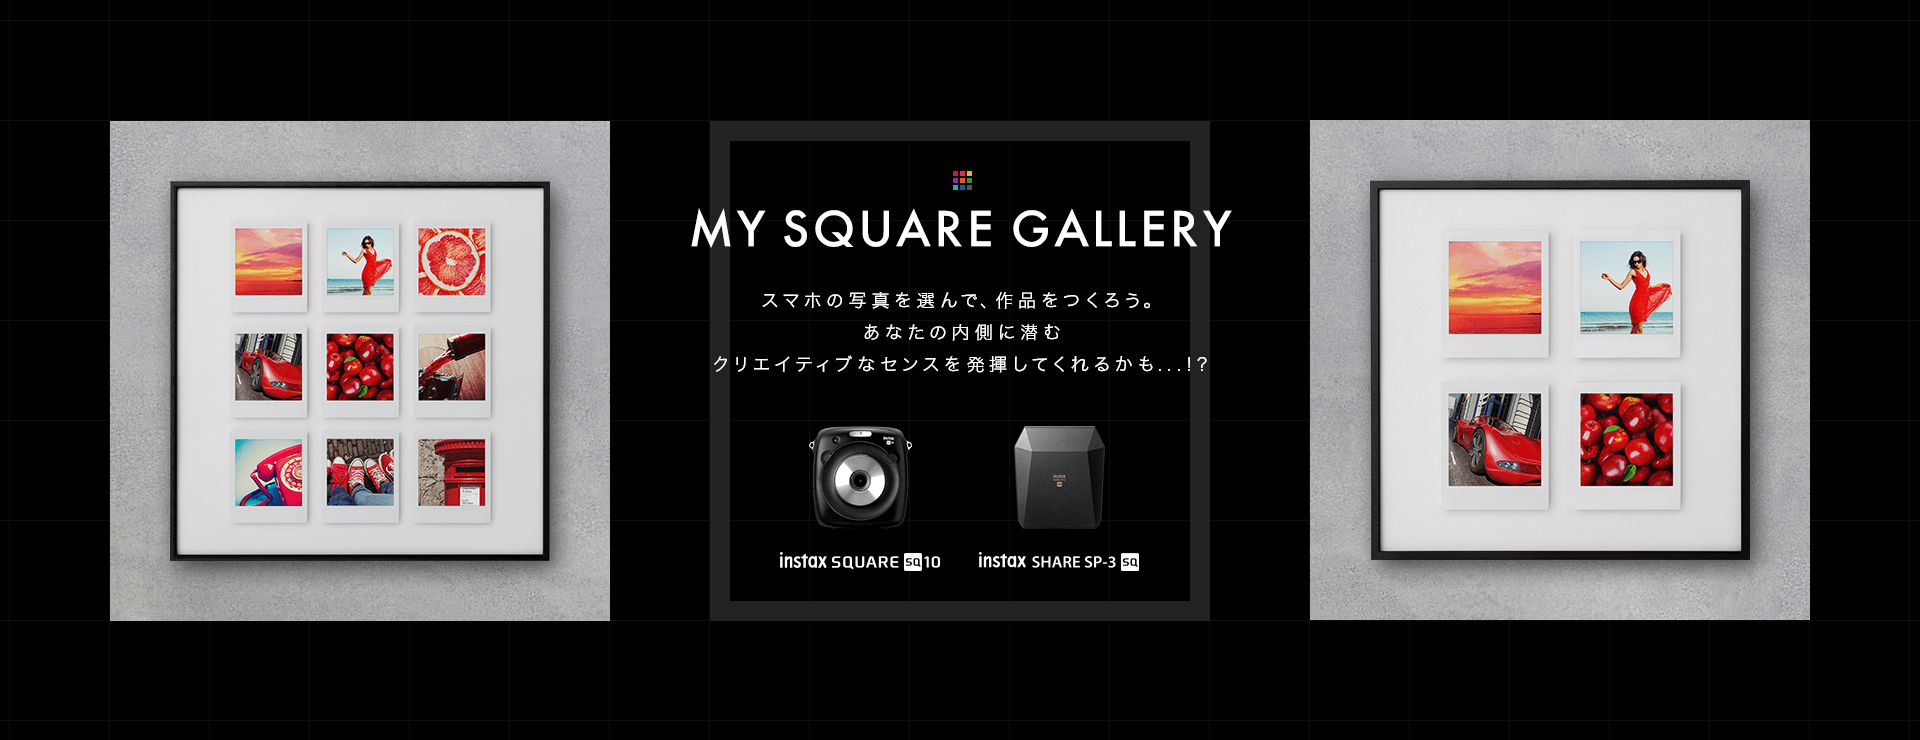 My Square Gallery